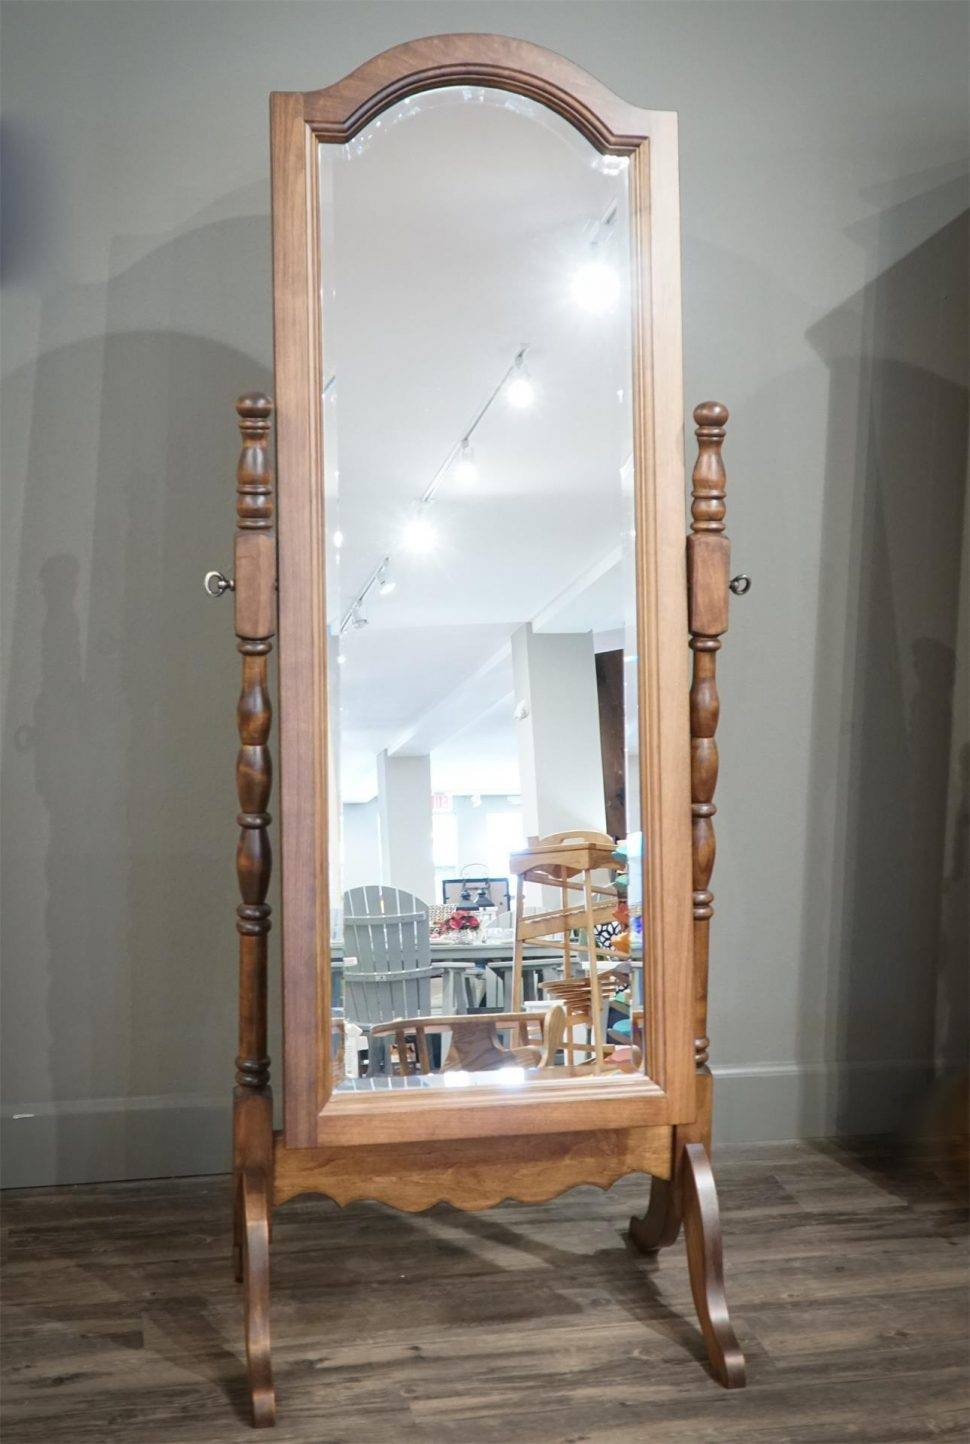 Bedroom Furniture : Free Standing Mirror Wood Framed Mirrors intended for Free Standing Mirrors (Image 5 of 25)